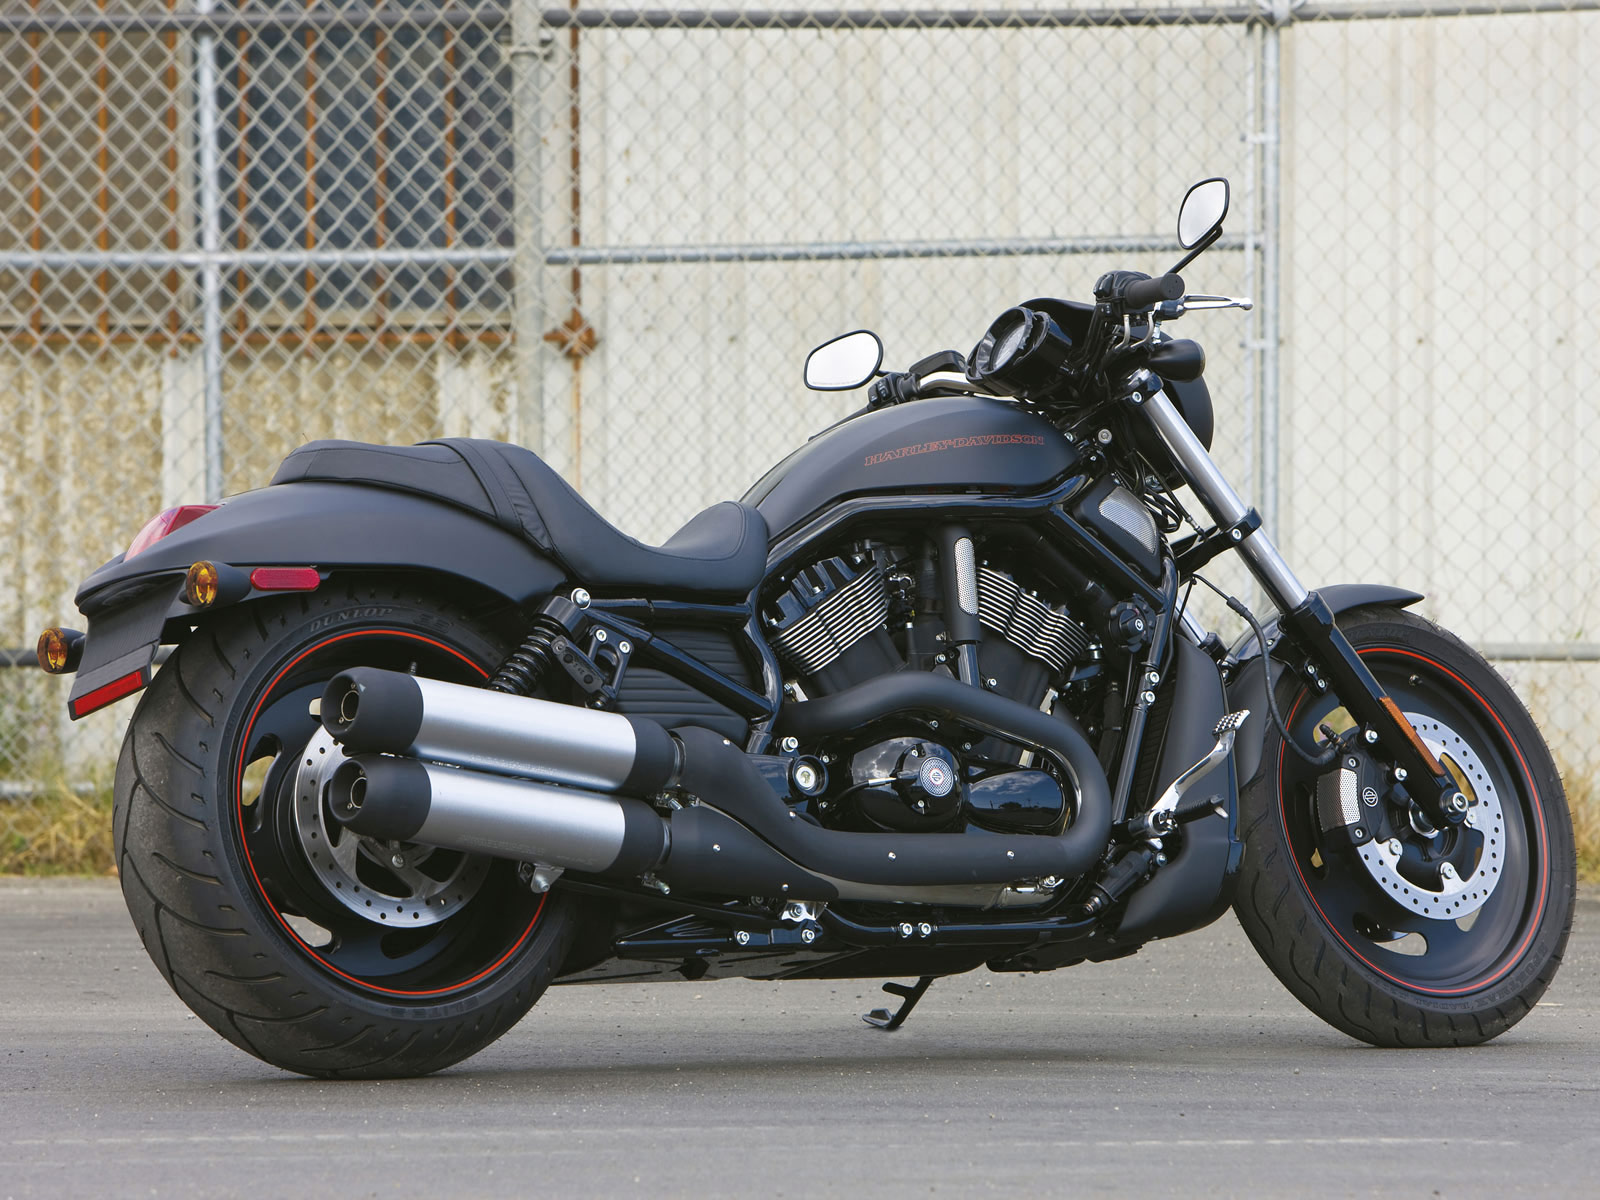 2009 Harley Davidson Vrscdx Night Rod Pictures